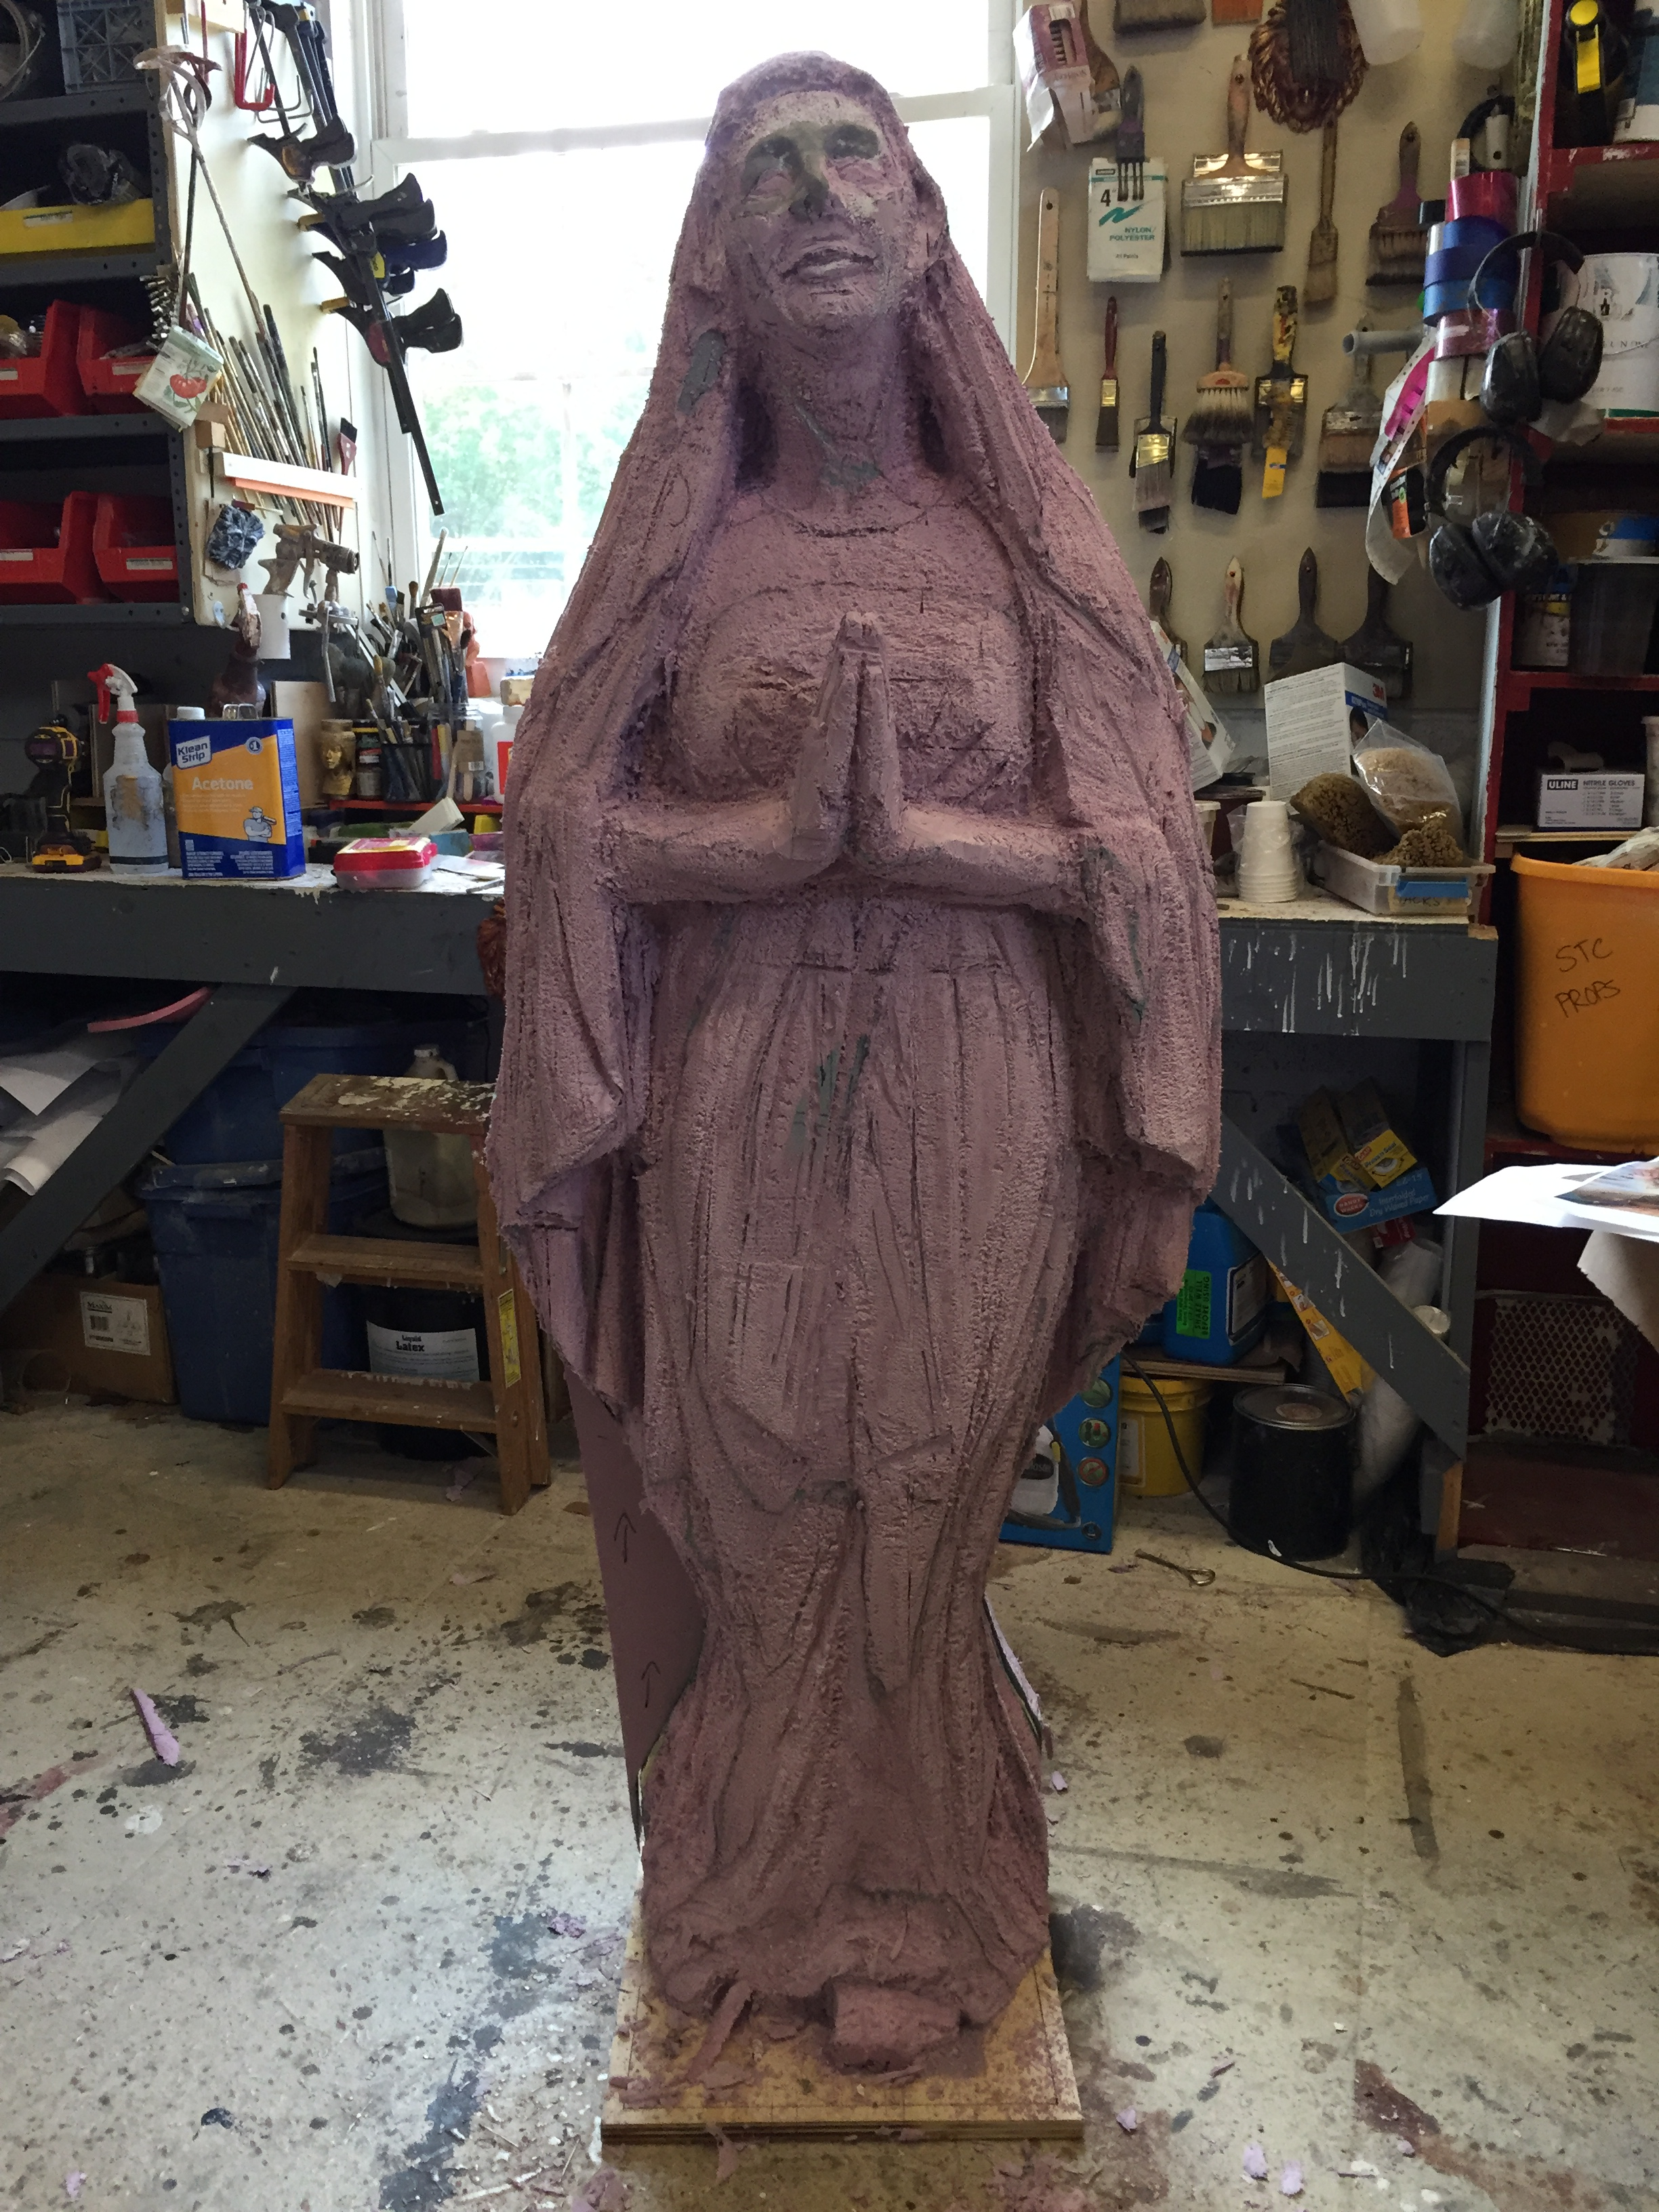 The progression of Props Painter/Sculptor Eric Hammesfahr's work on a Madonna statue for ROMEO & JULIET.